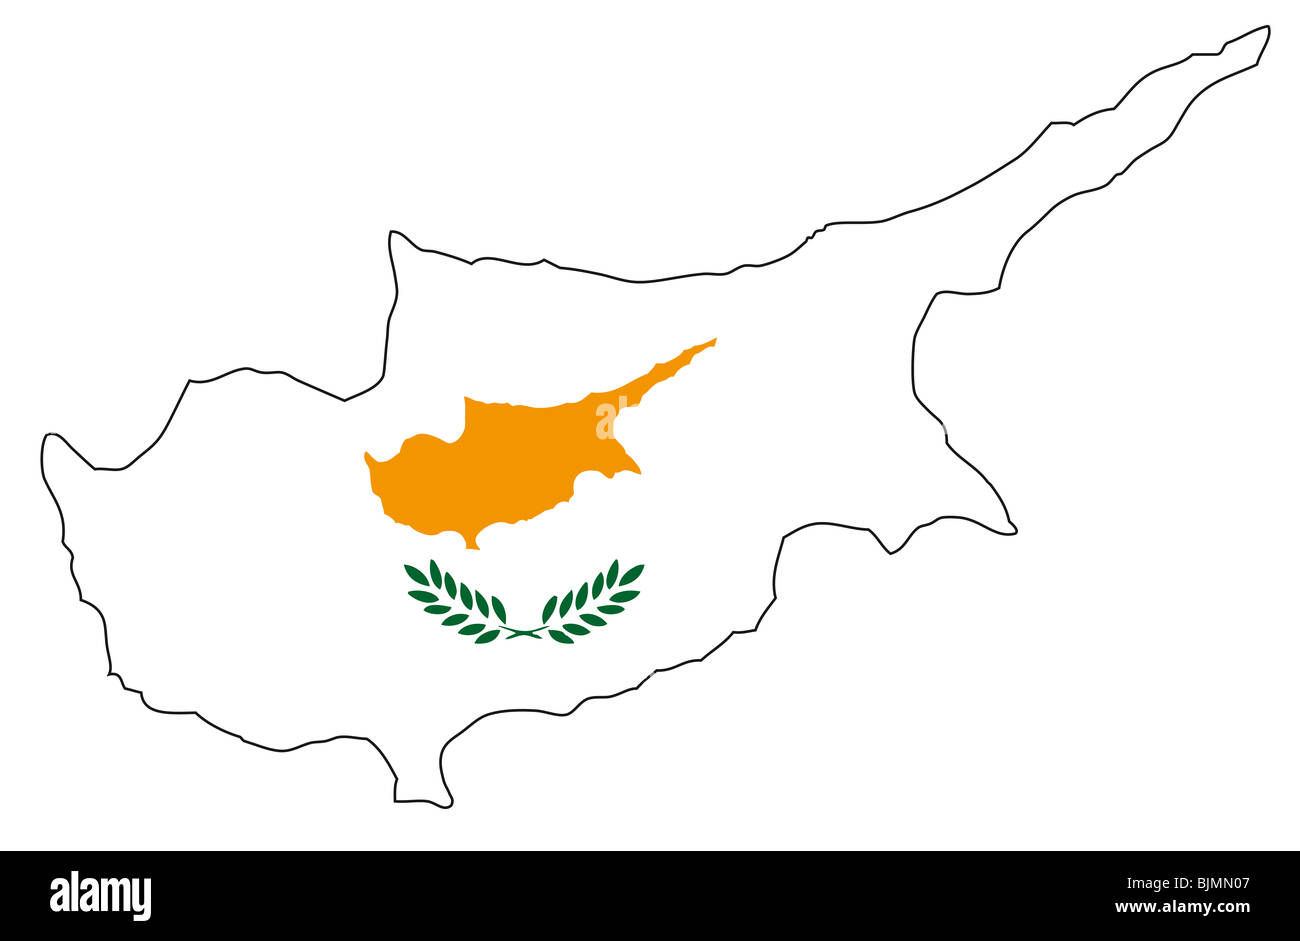 Republic Of Cyprus Flag Outline Stock Photo Royalty Free Image - Cyprus blank map